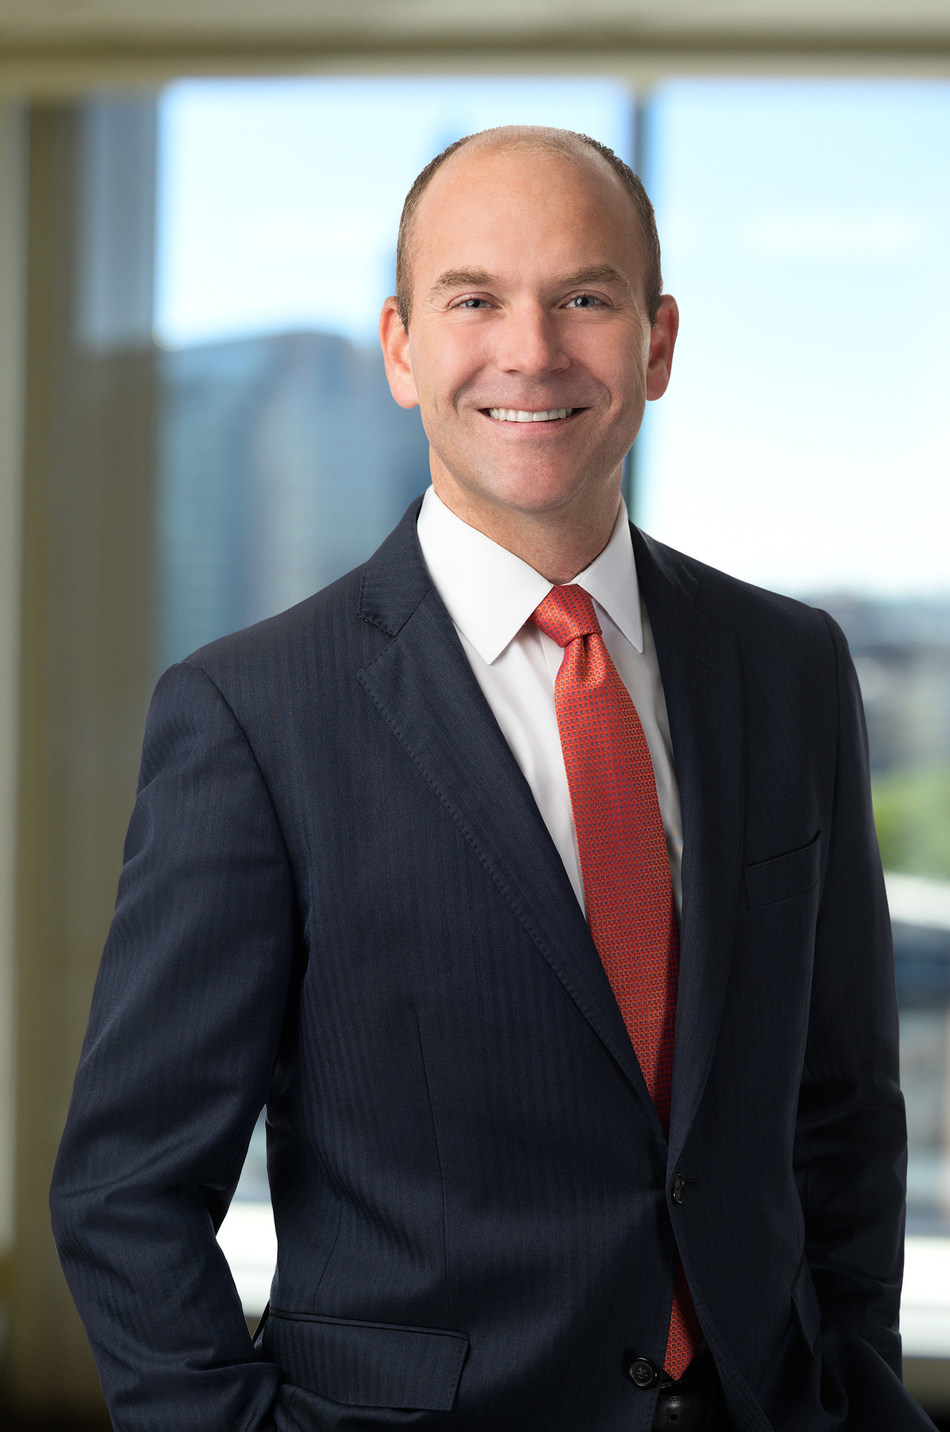 Thomas Reith has been named Co-Chair of Burns & Levinson's highly-regarded Business Litigation & Dispute Resolution Group. Reith will serve as co-chair with partner Andrea Martin, who has co-chaired the group since 2019. Reith replaces long-time co-chair Paul Mastrocola, who was recently named co-managing partner of the firm.